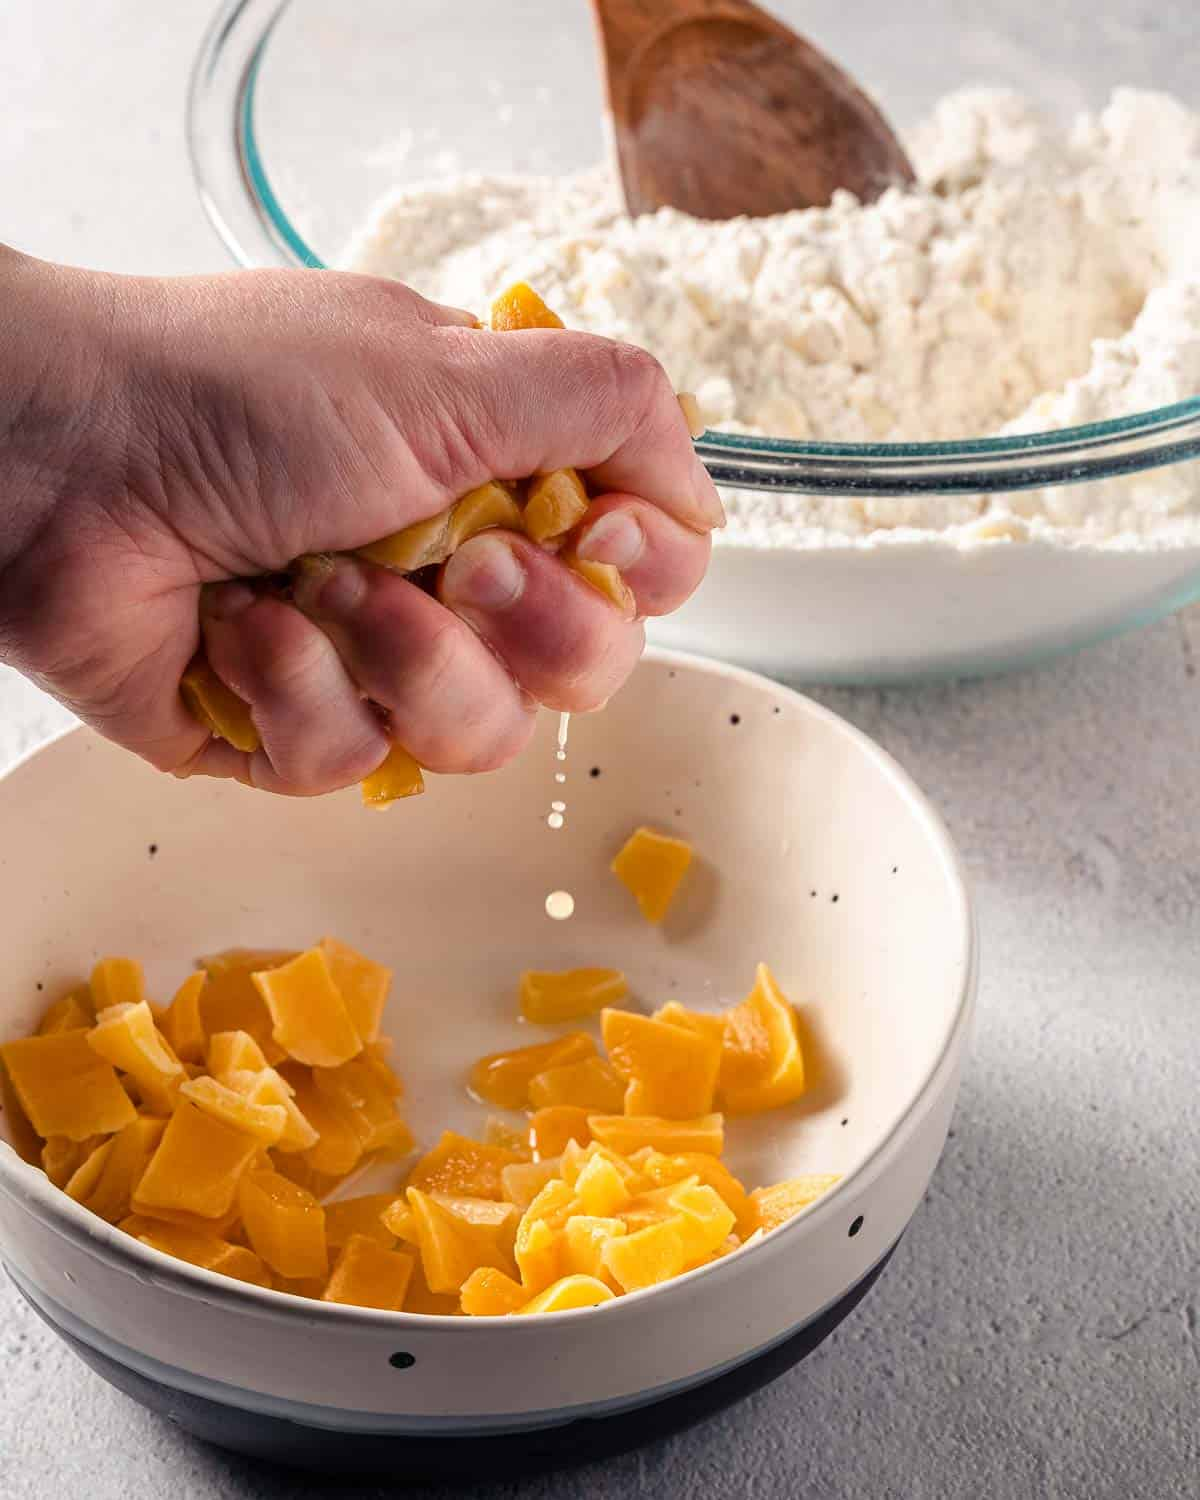 hand squeezing moisture off of soaked mango pieces